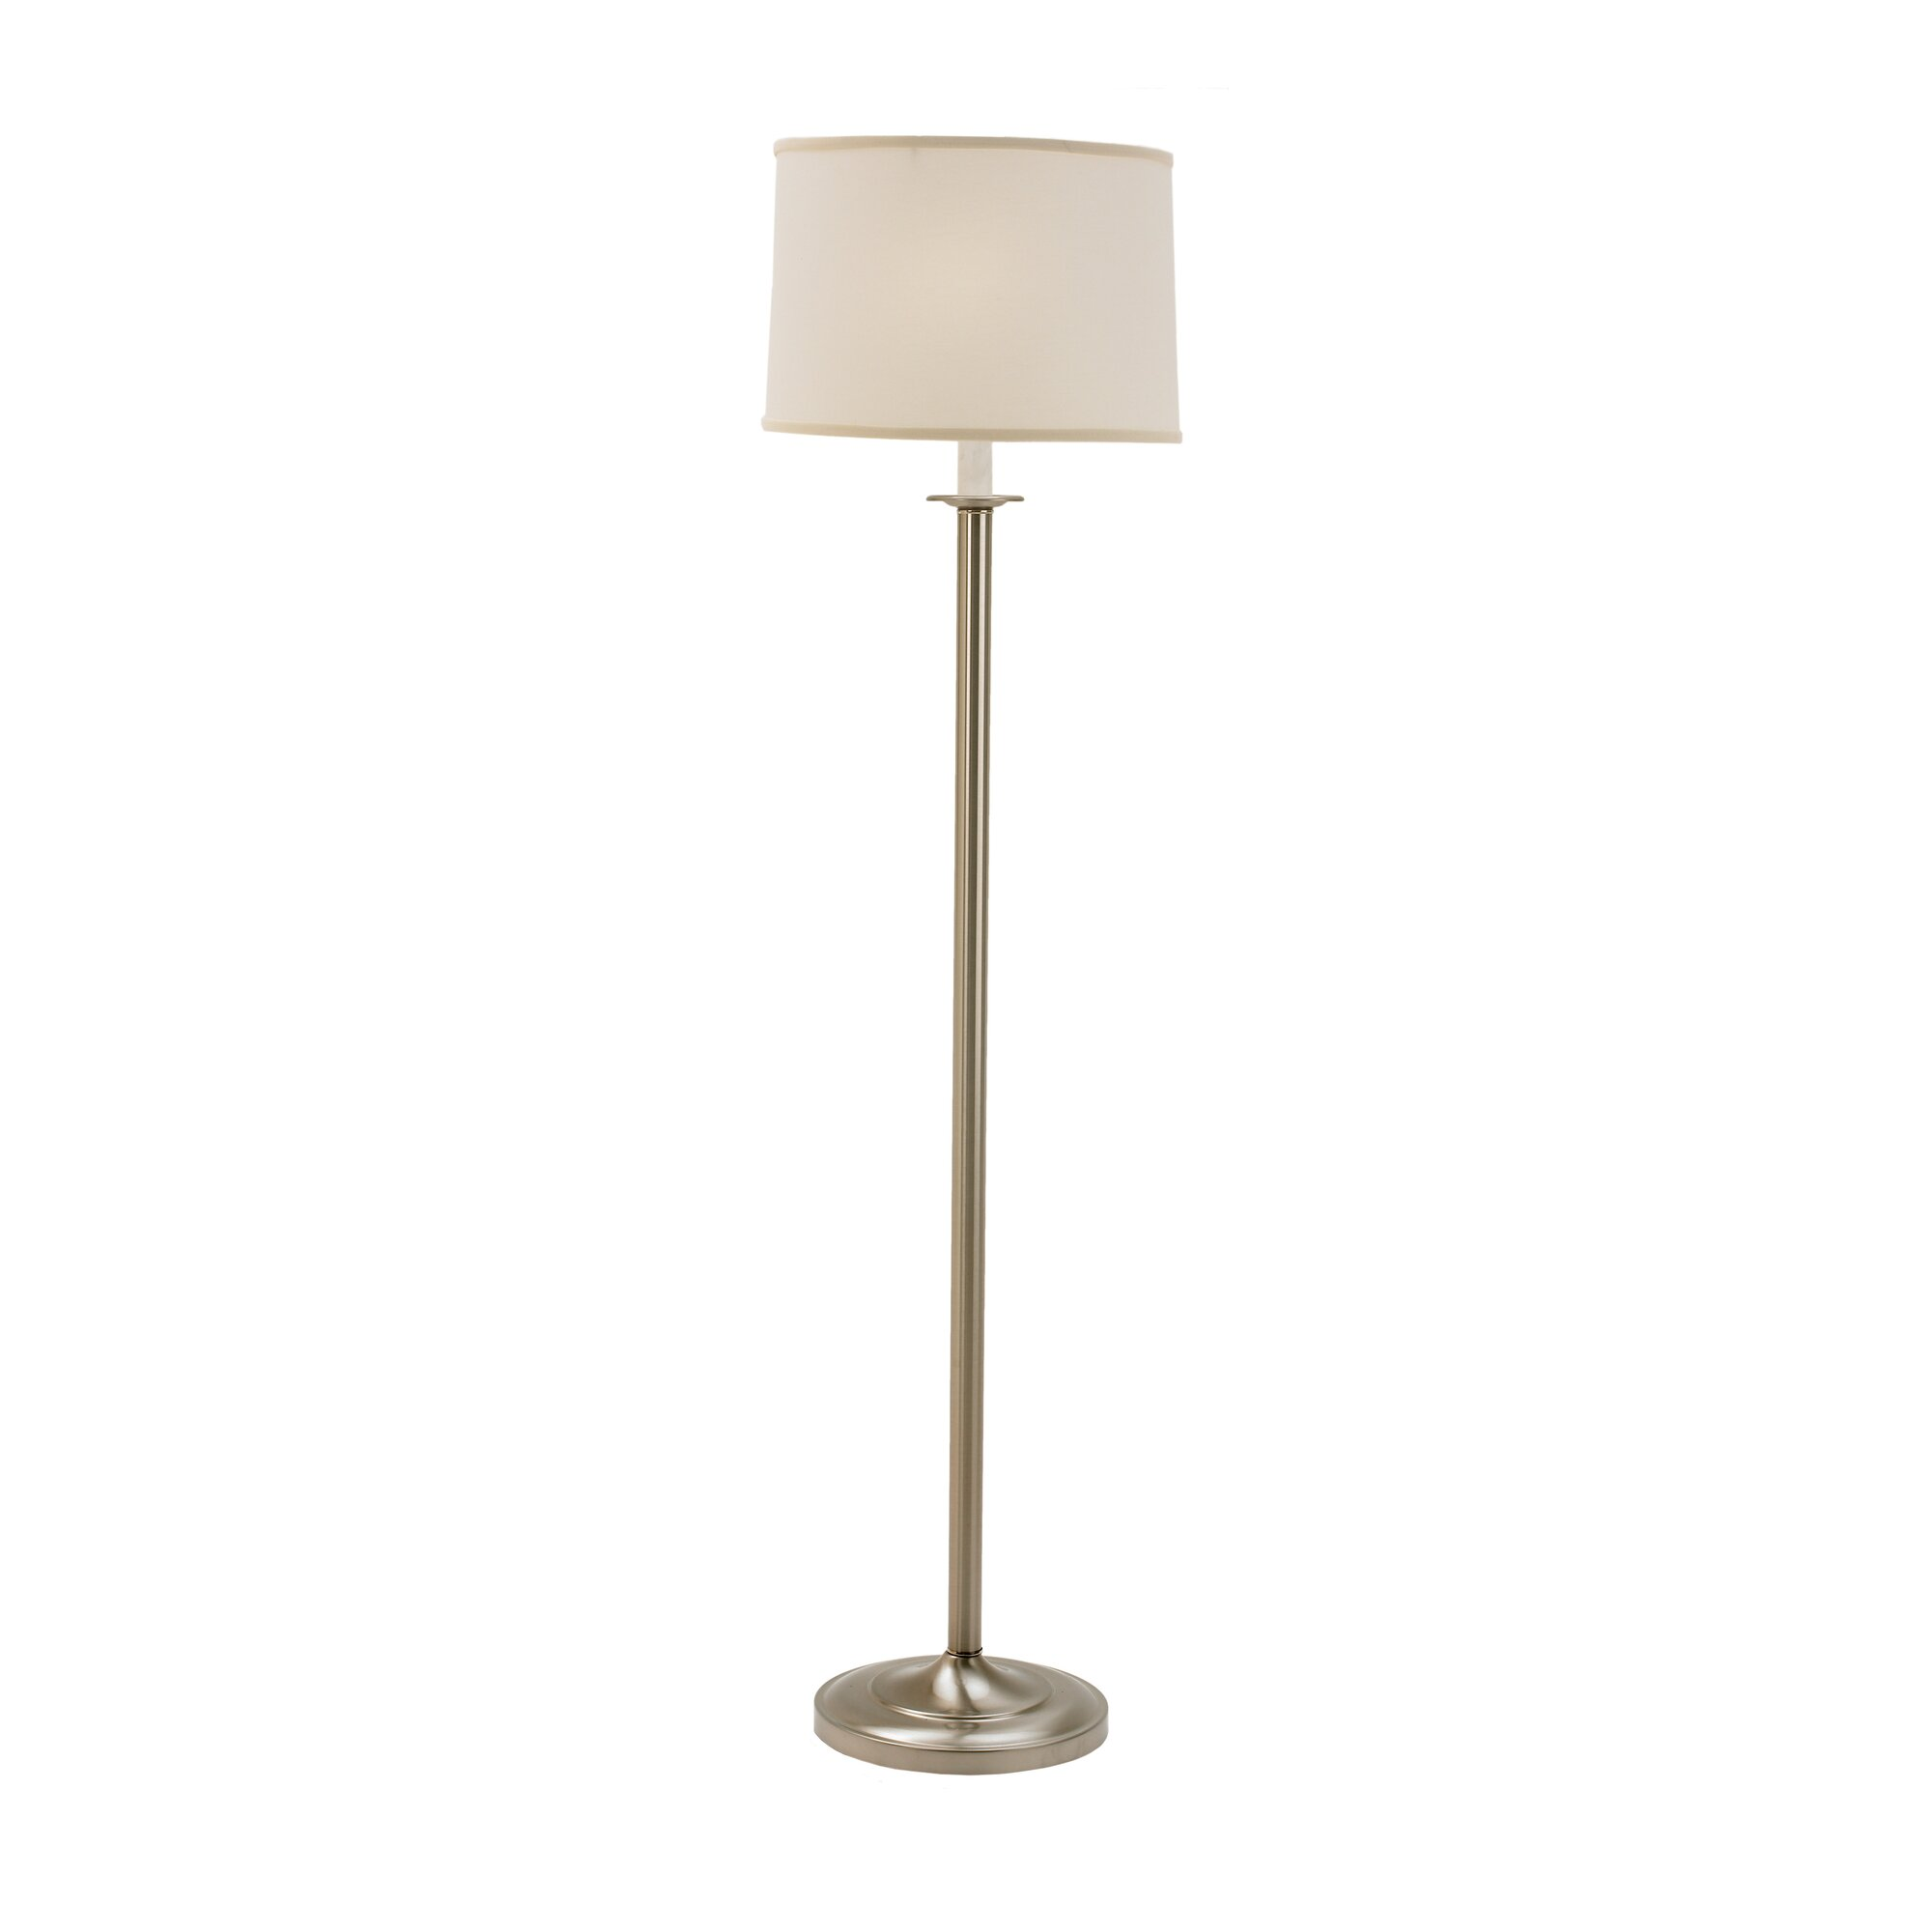 Wayfair Furniture Floor Lamps